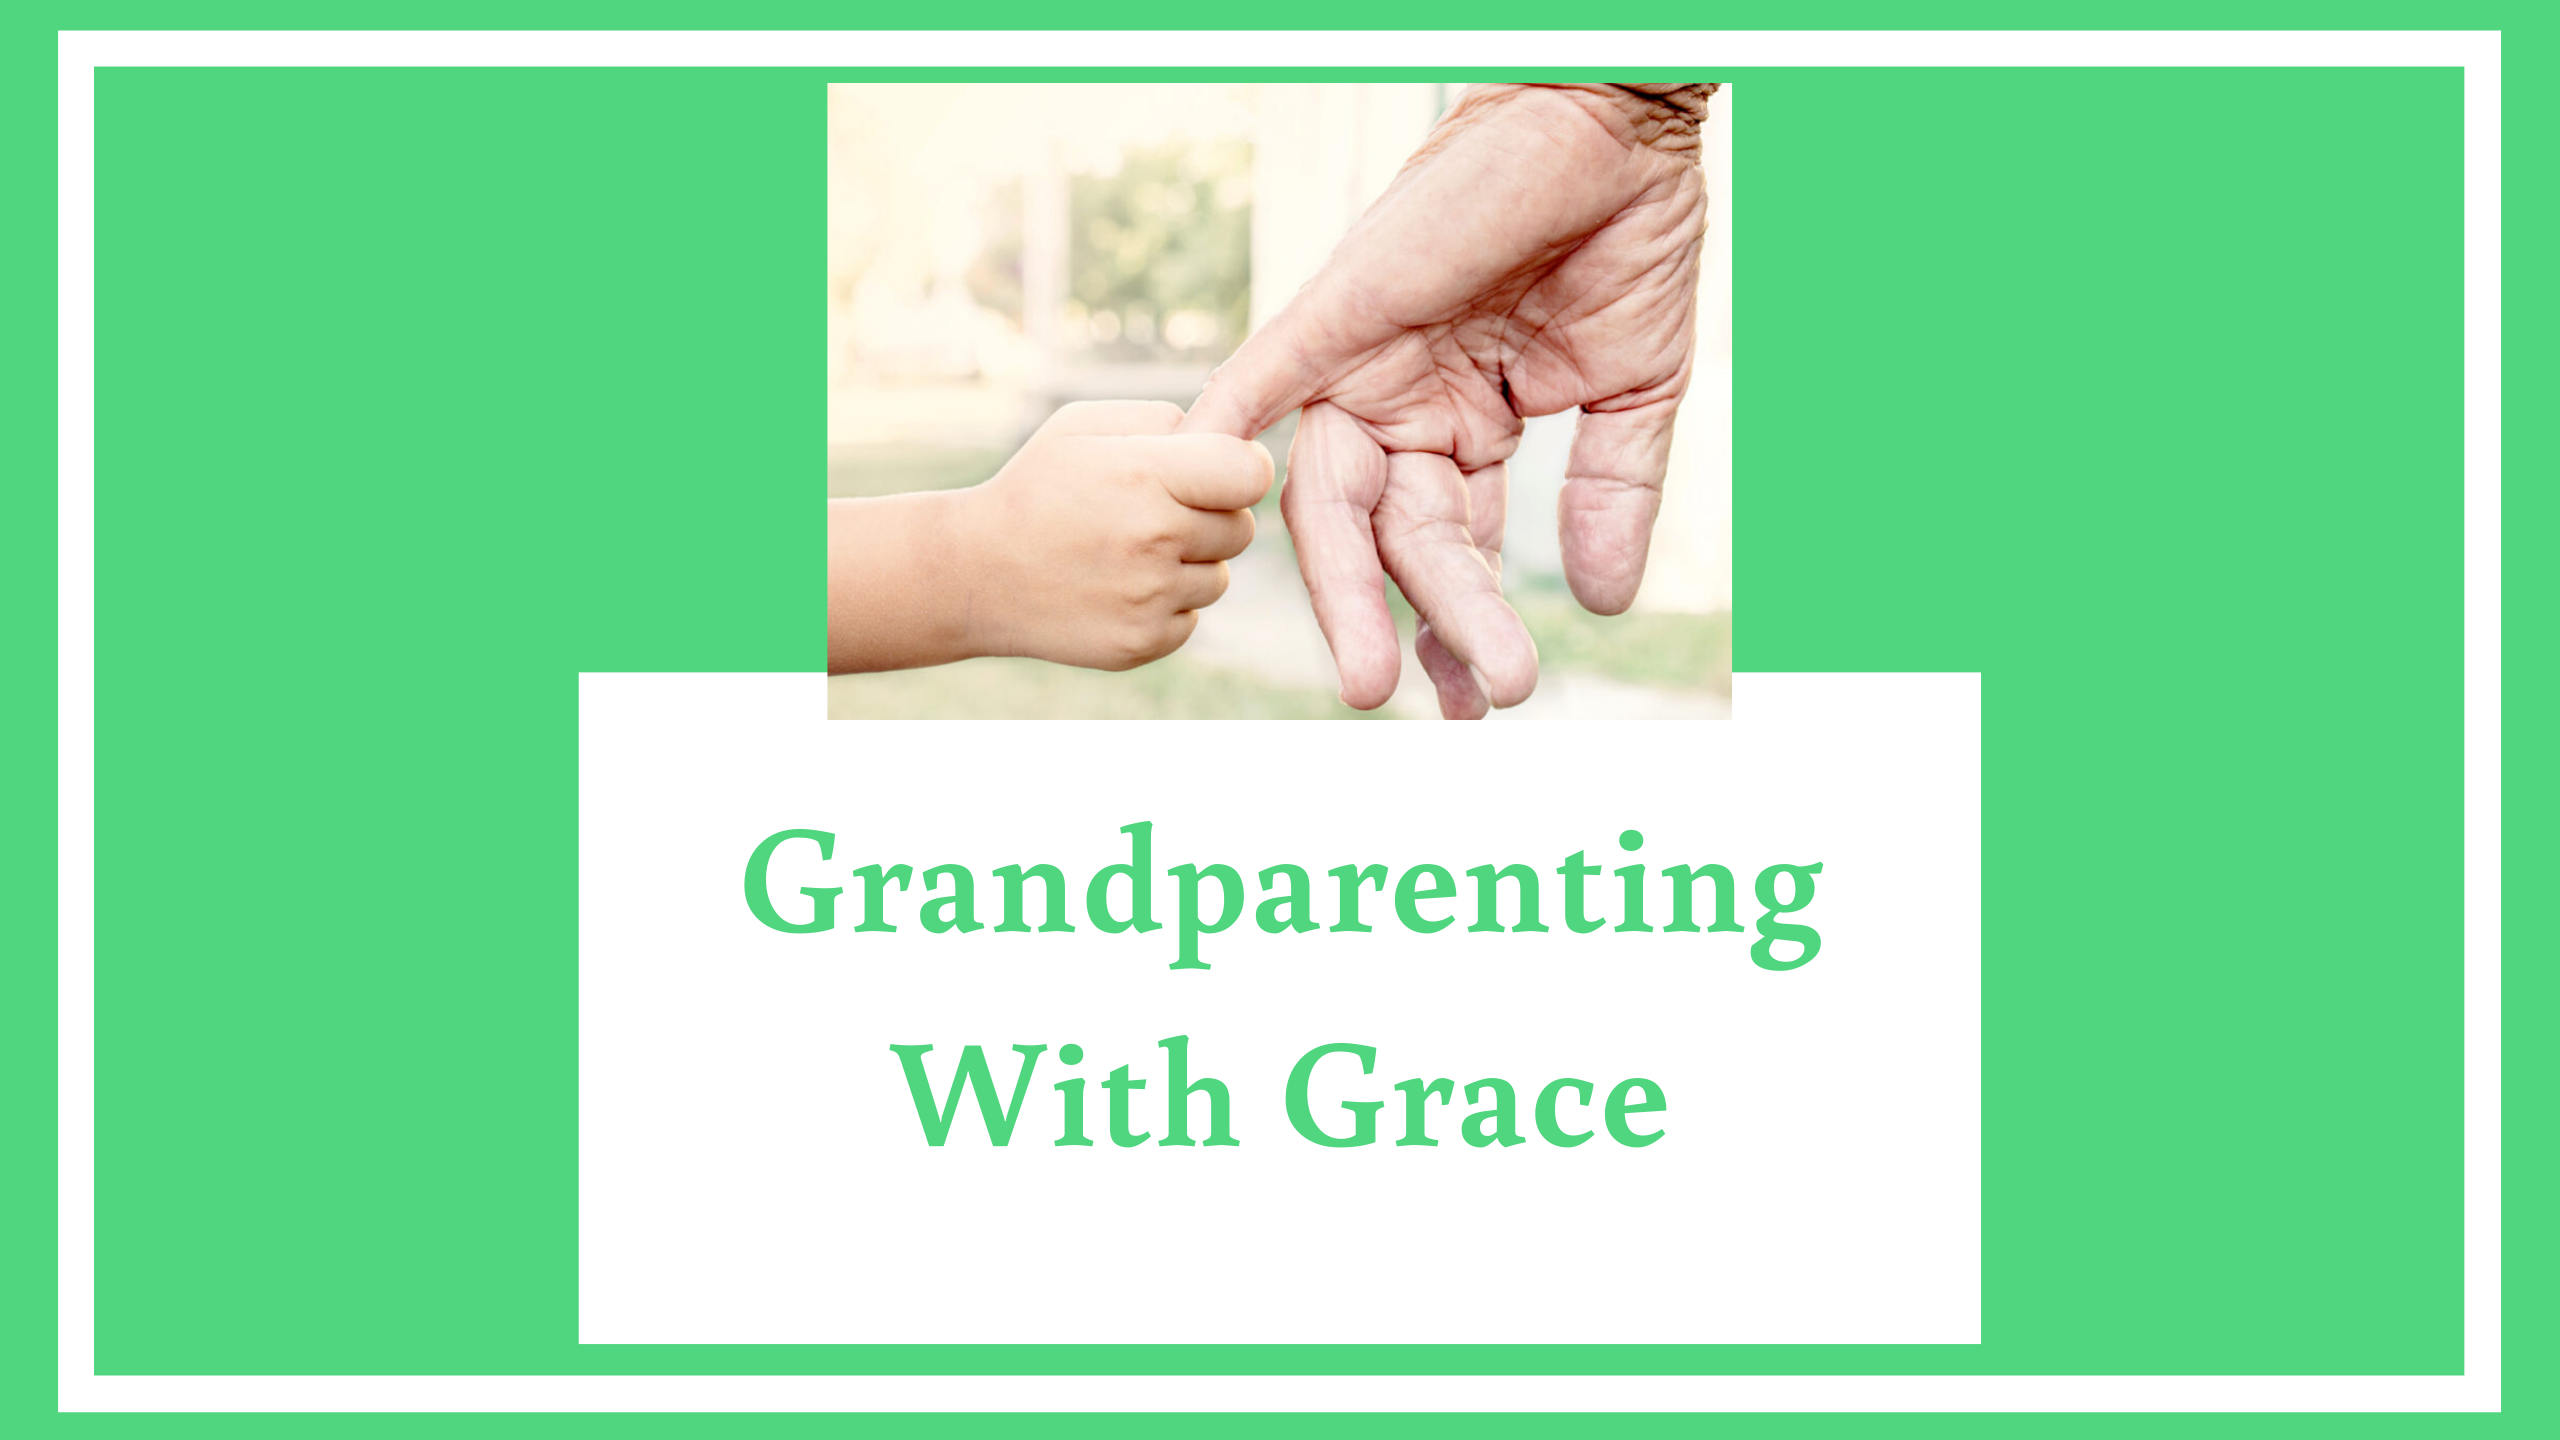 Grandparenting With Grace image